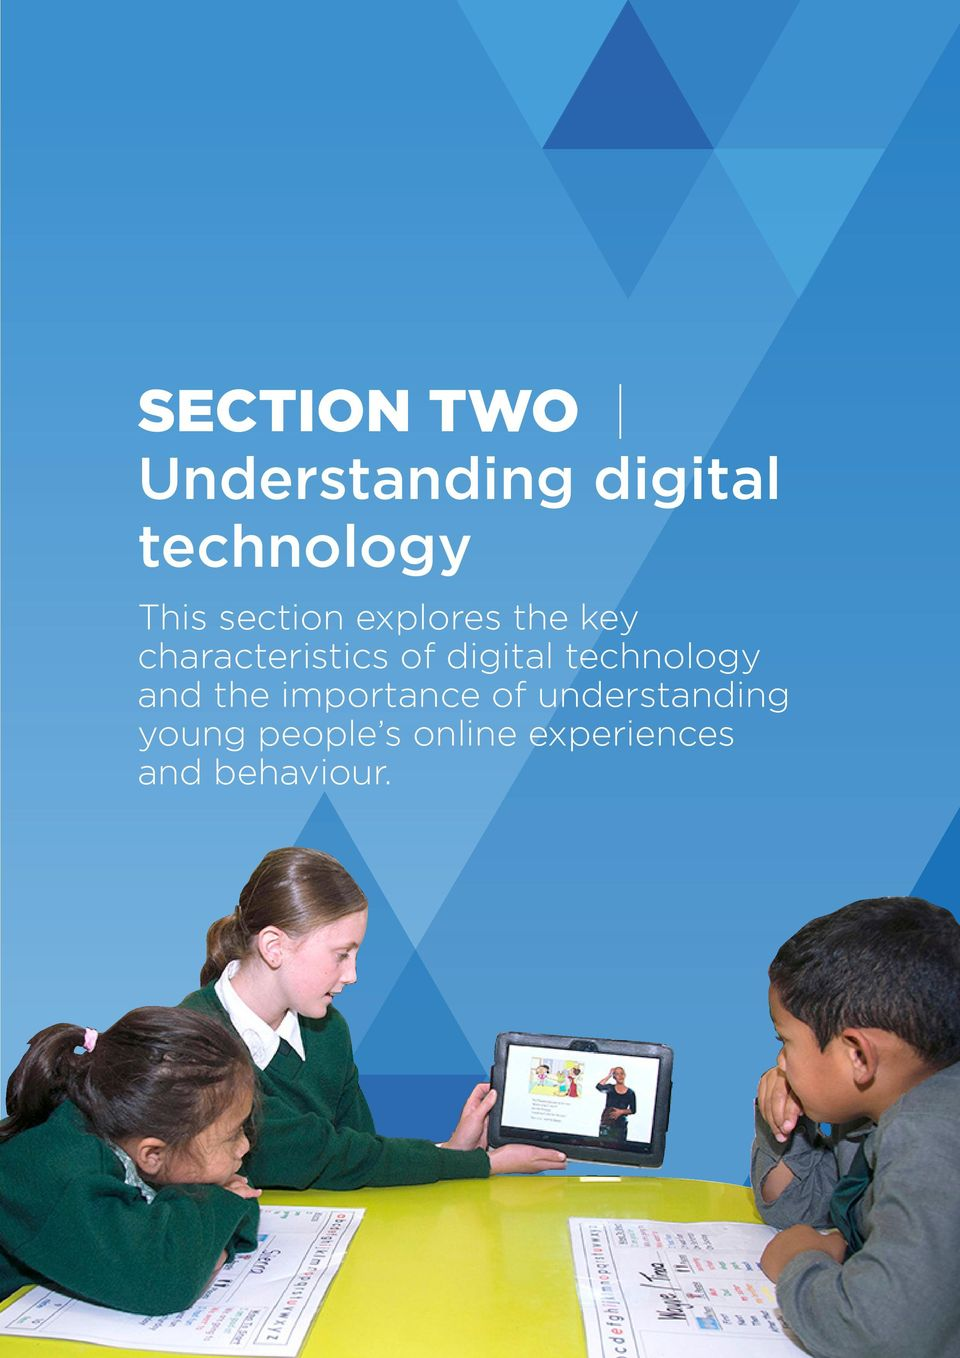 digital technology and the importance of